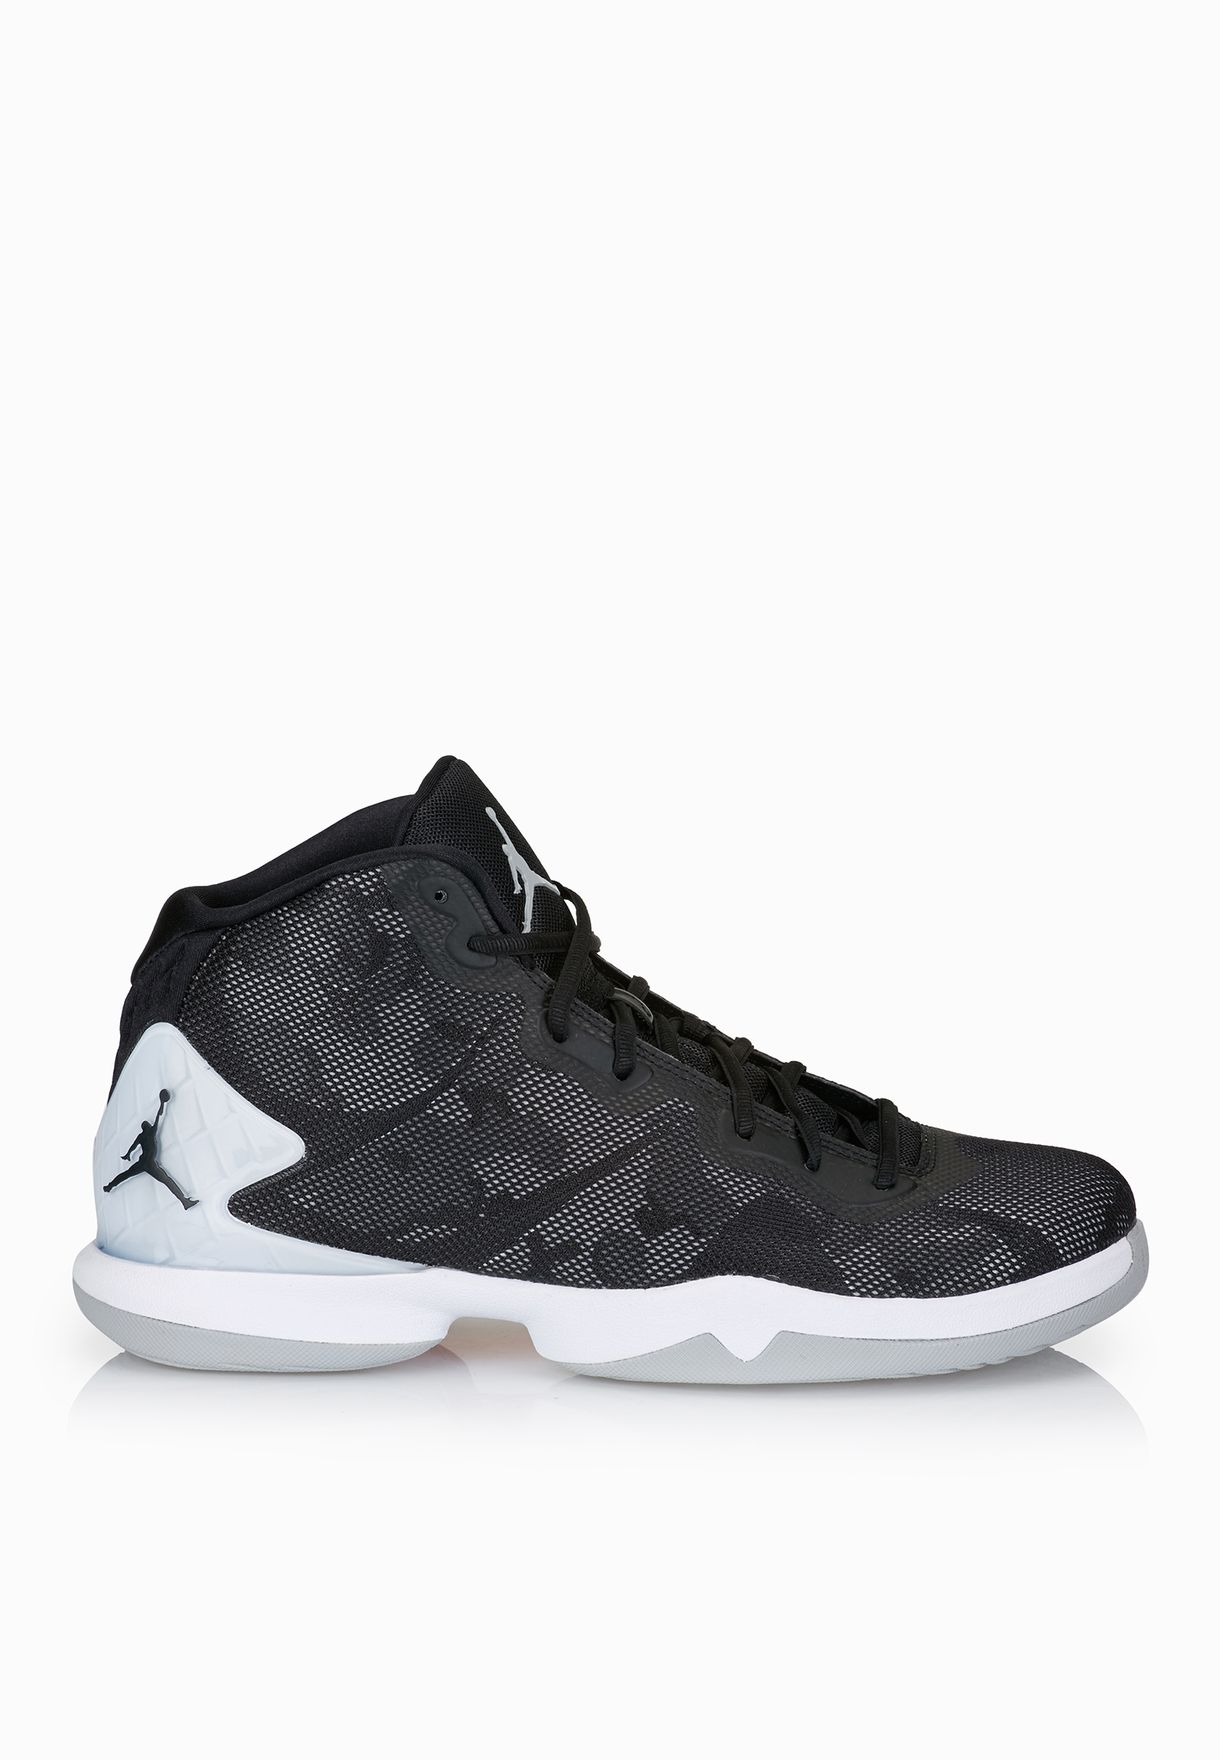 c11271922afb0a Shop Nike black Jordan Super Fly 4 768929-007 for Men in UAE ...